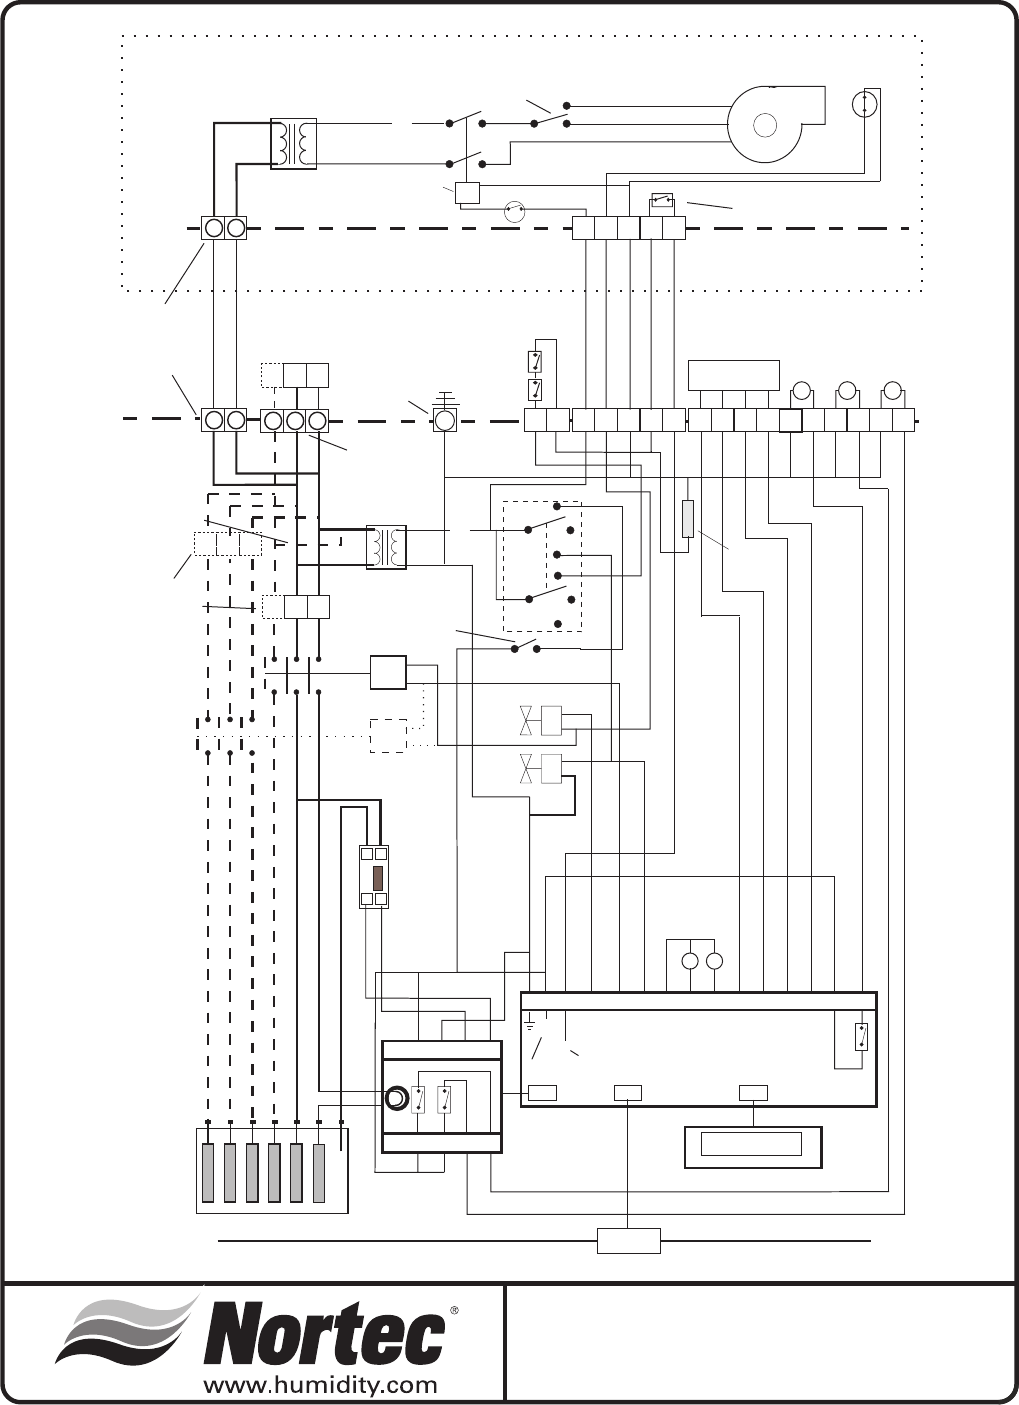 Nortec 132 3091 Ss Therm O Disc Wiring Diagrams 24 Nhmc Humidifierw Or W Optional Blower Packbuilt On Remotewiring Diagram No